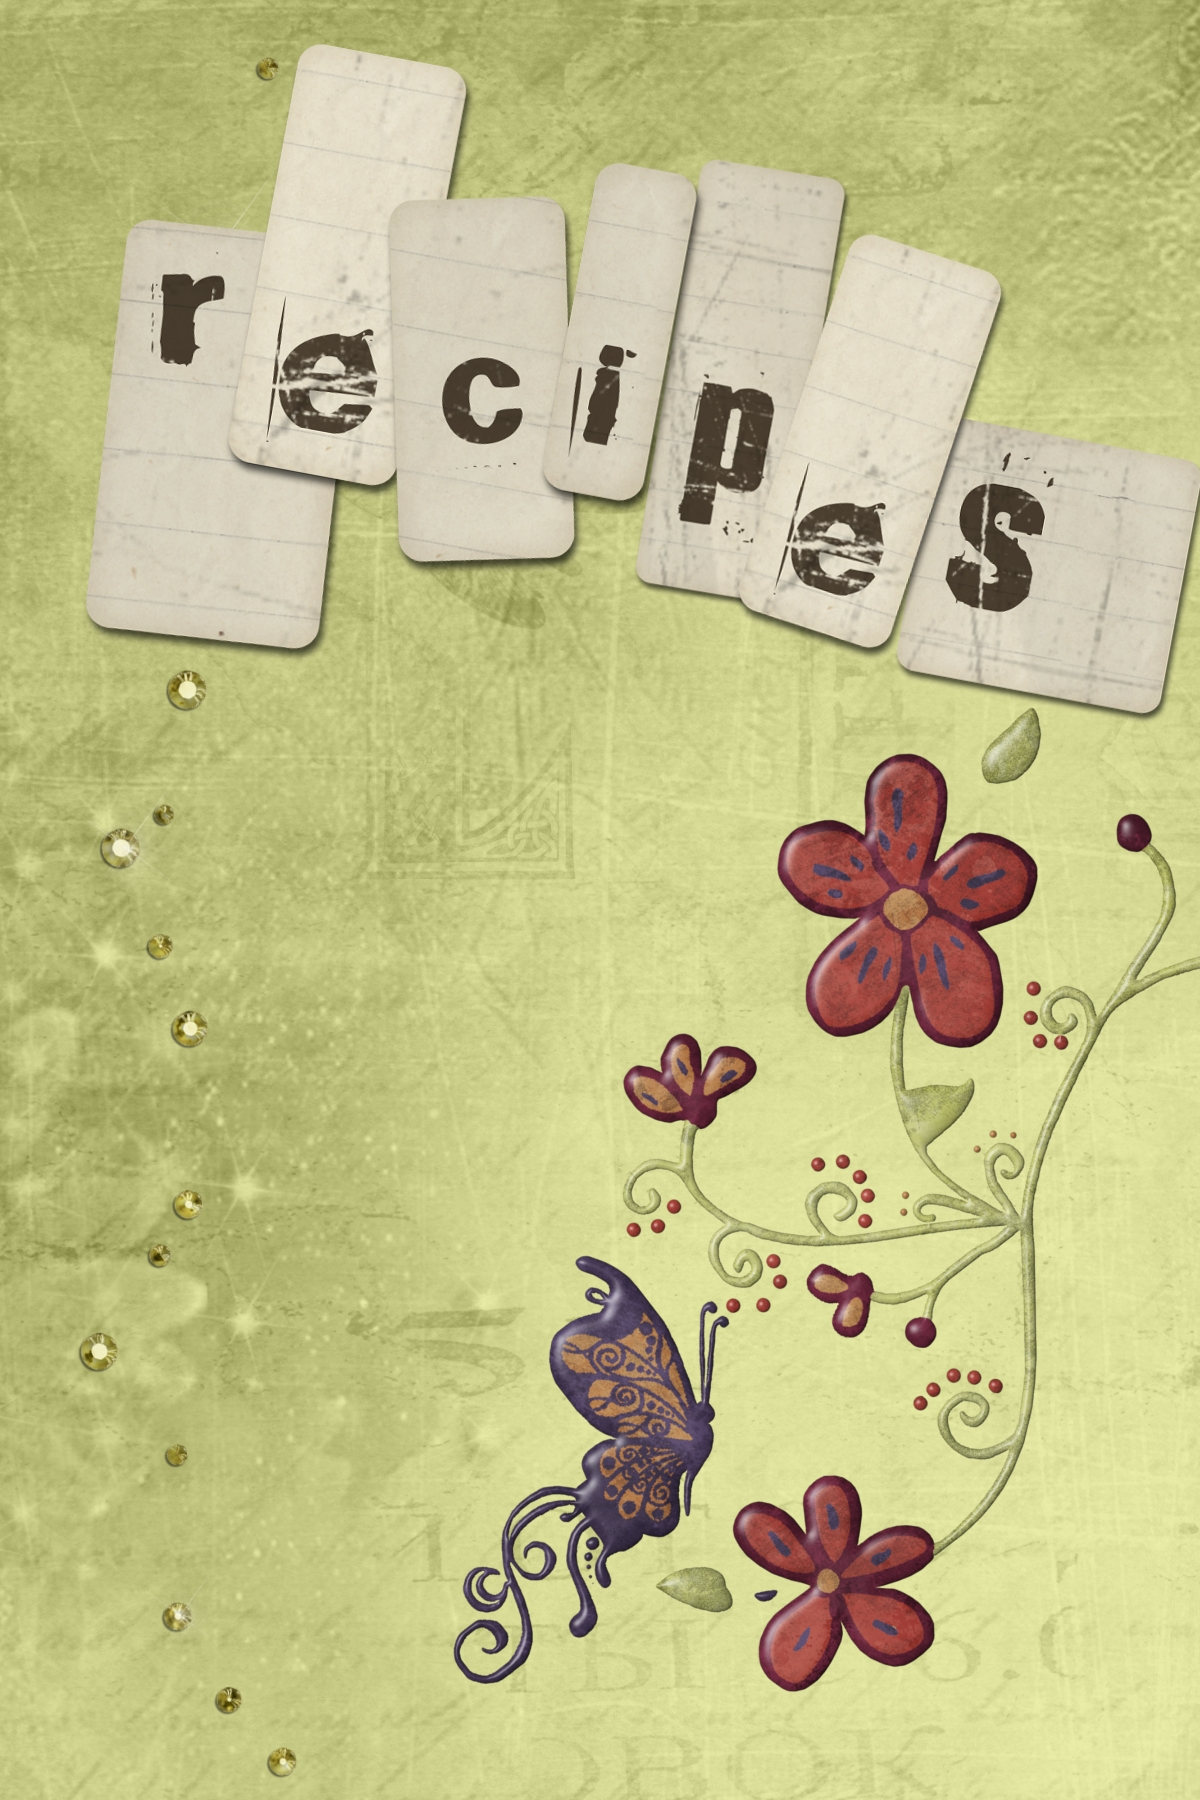 Recipe book cover clipart royalty free stock Cute recipe book cover clipart - ClipartFest royalty free stock